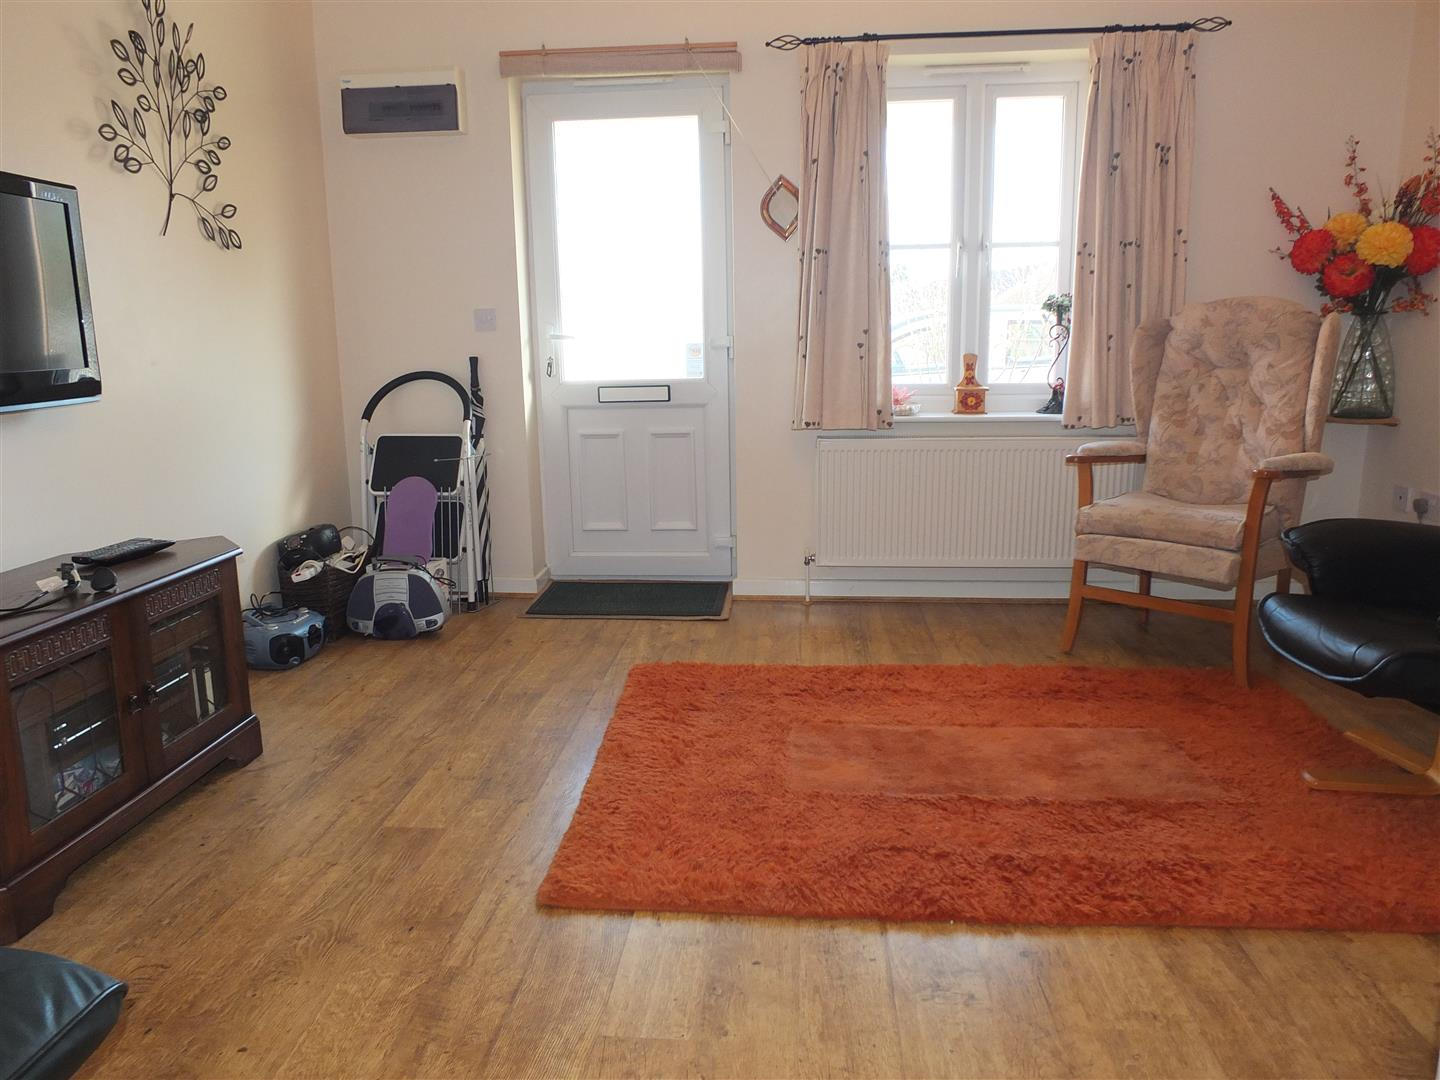 2 bed terraced house to rent in Long Sutton Spalding, PE12 9BF 1